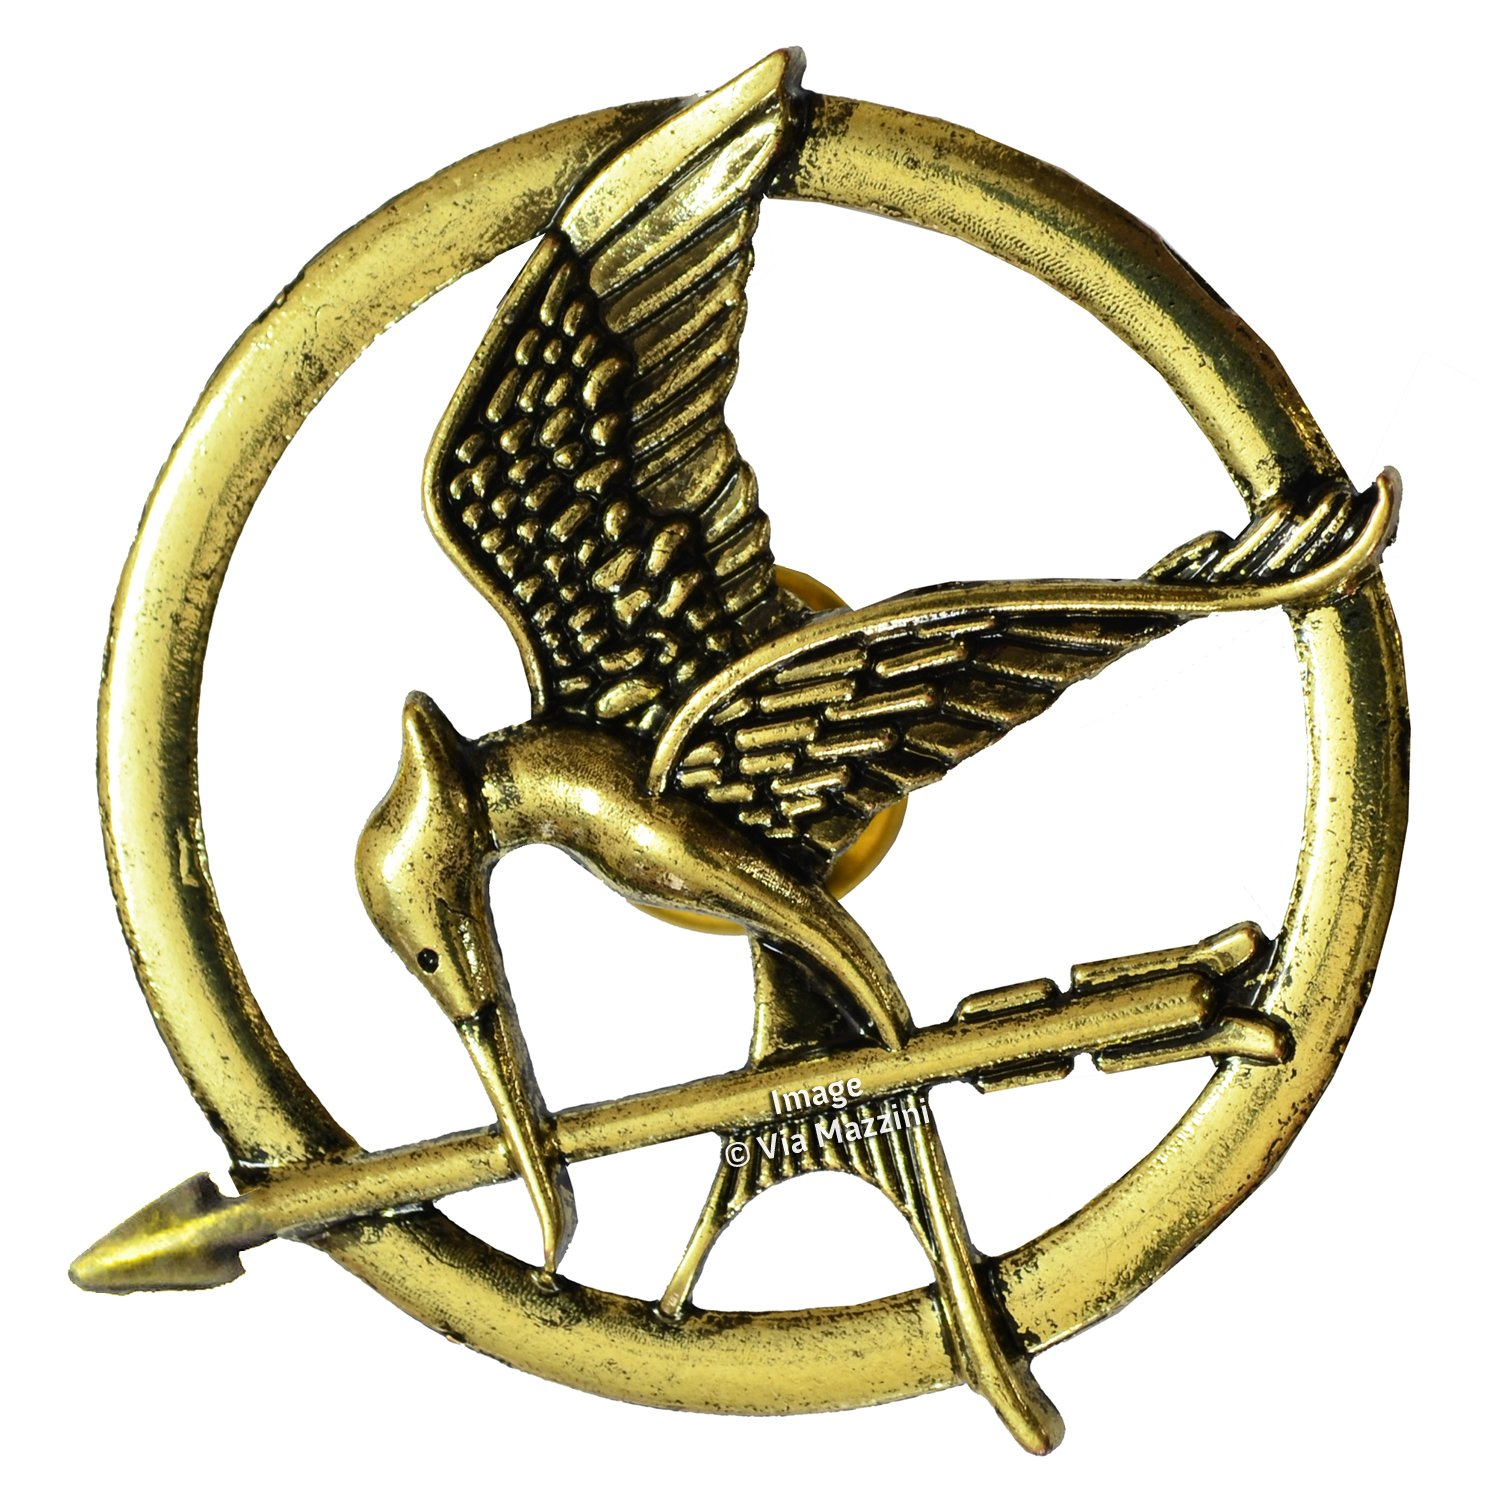 Buy famous the hunger games mockingjay bird brooch by via buy famous the hunger games mockingjay bird brooch by via mazzini brooch0353 online at low prices in india amazon jewellery store amazon biocorpaavc Choice Image